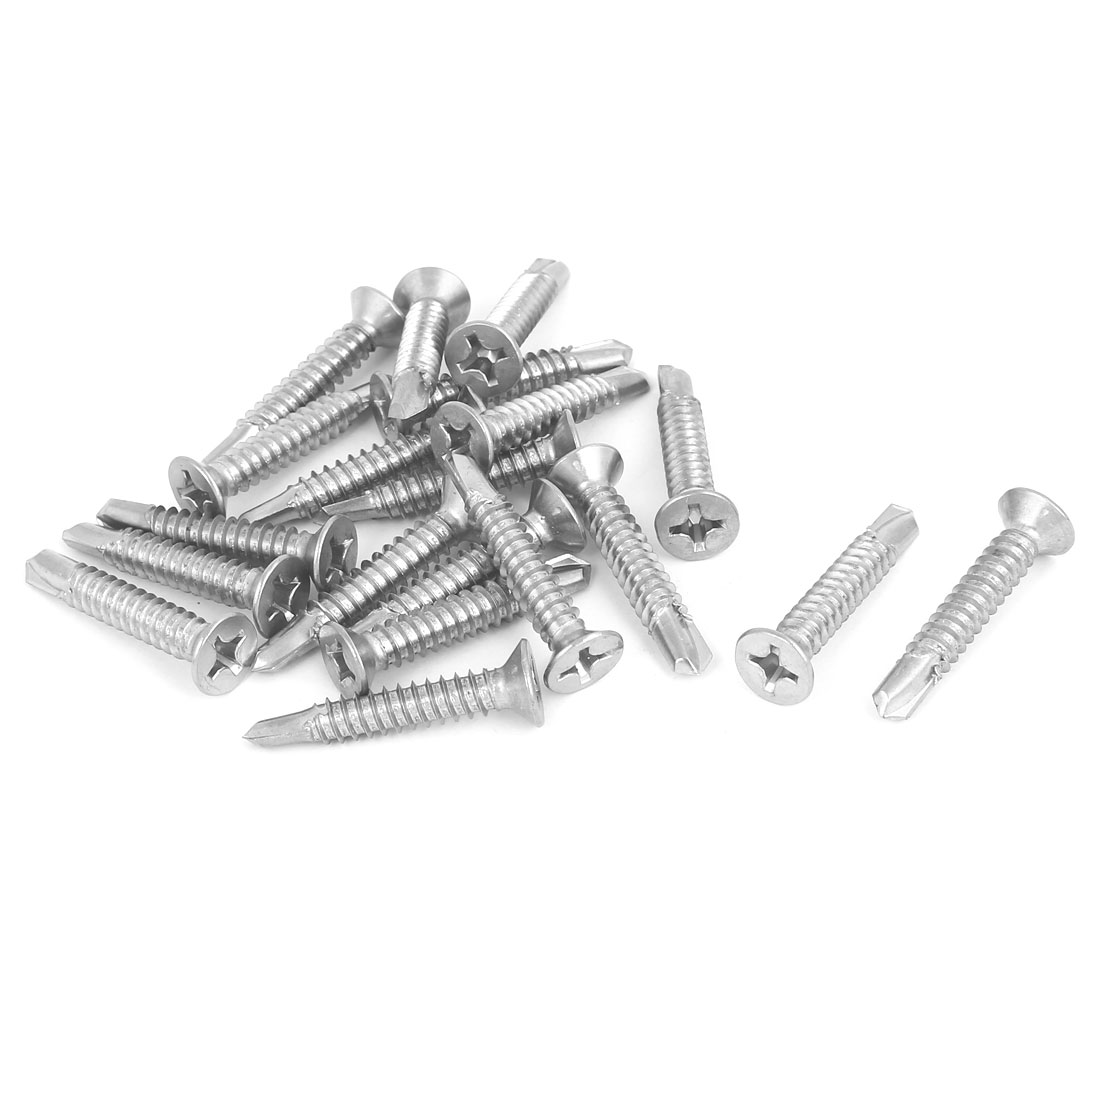 M6.3 x 38mm Phillips Countersunk Head Self Drilling Tek Screws Bolts 20 Pcs